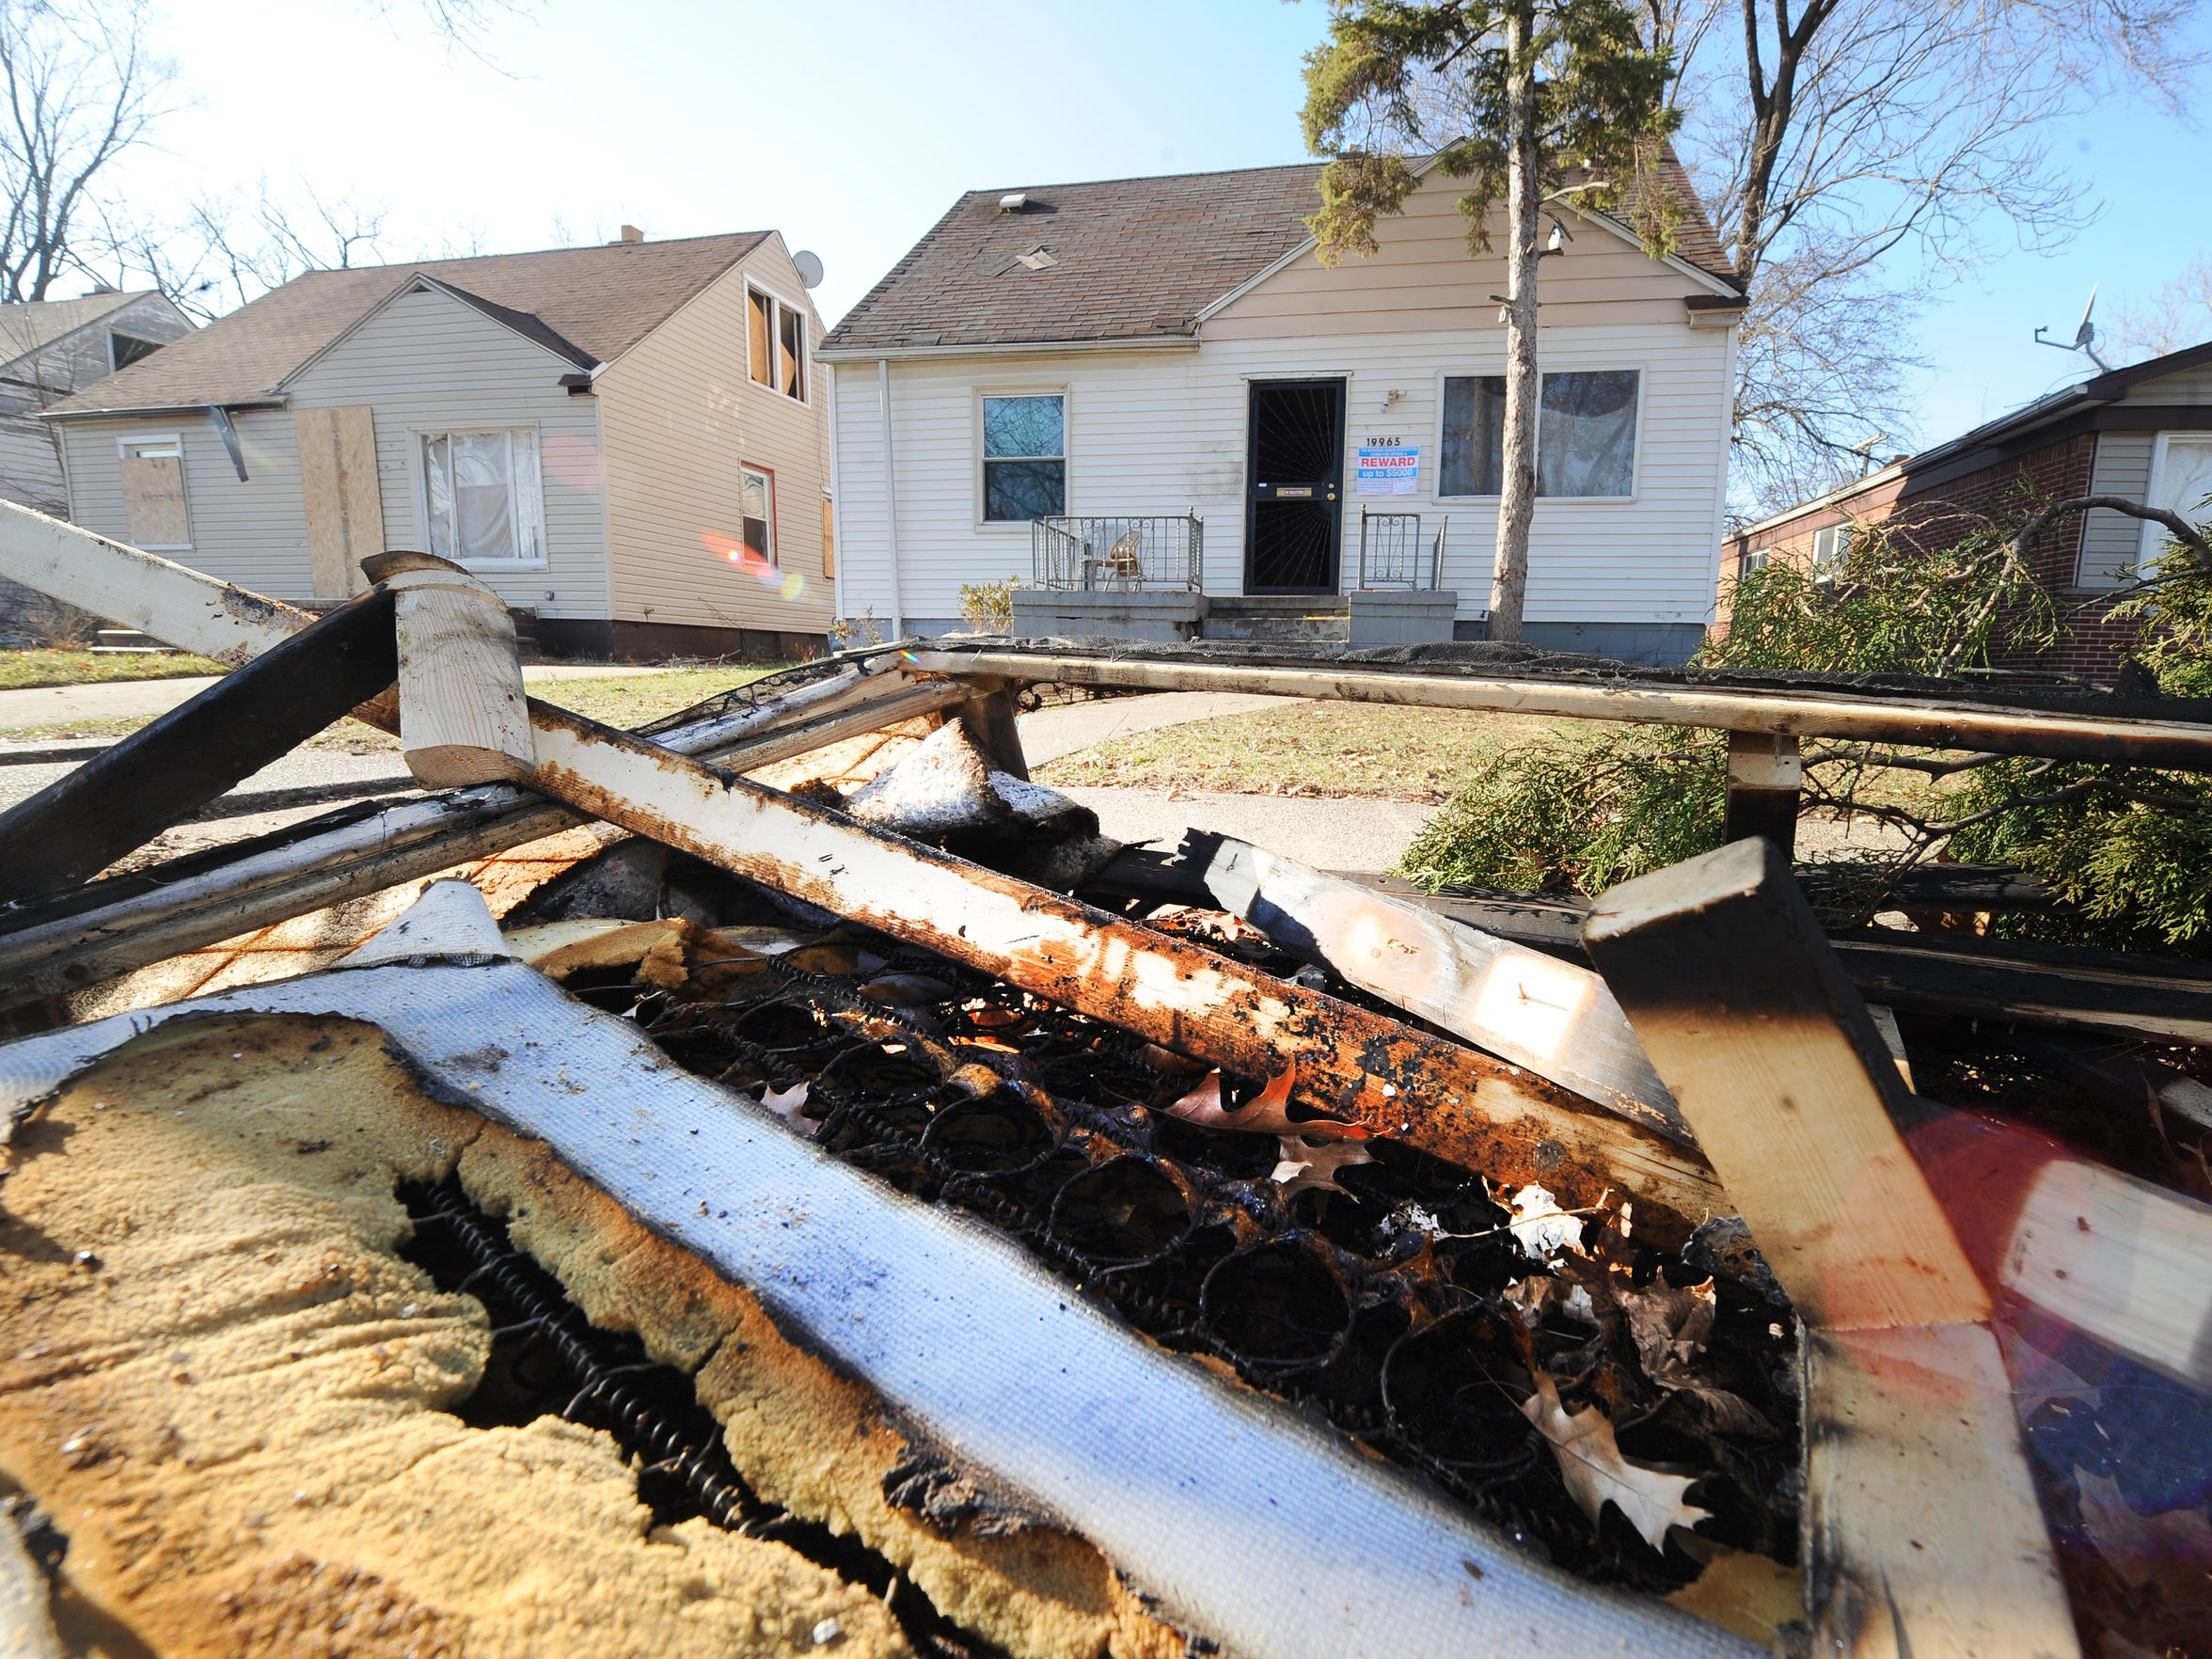 Charred items rest curb-side at the scene of a suspected